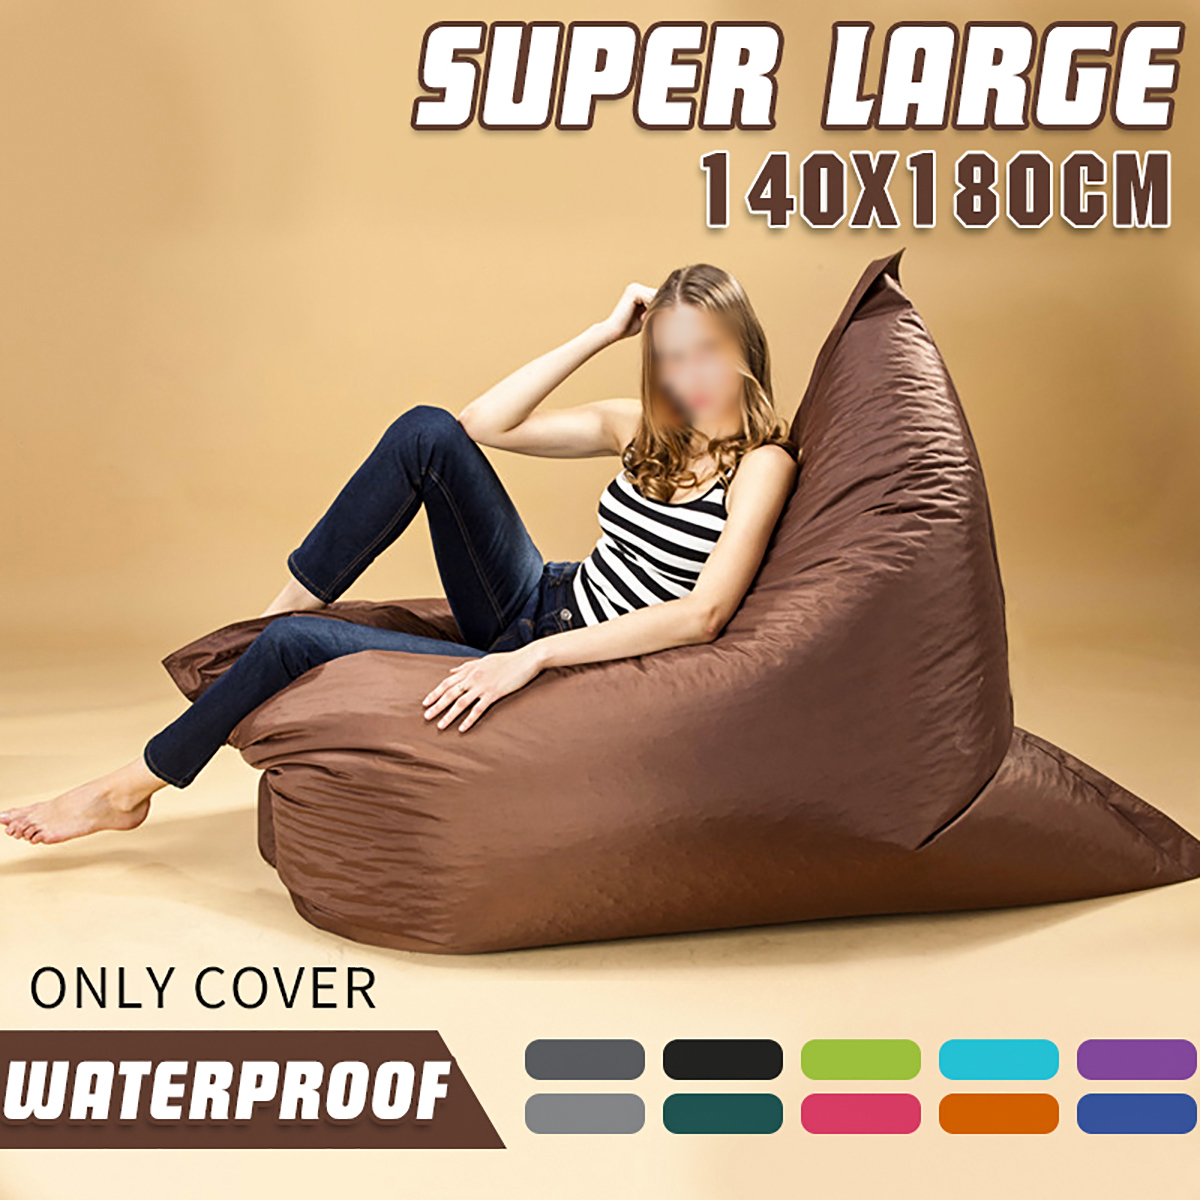 140 * 180 cm XXXL Outdoor Foldable Bean Bag Coat Multicolor Waterproof Oxford Cloth Lazy Sofa